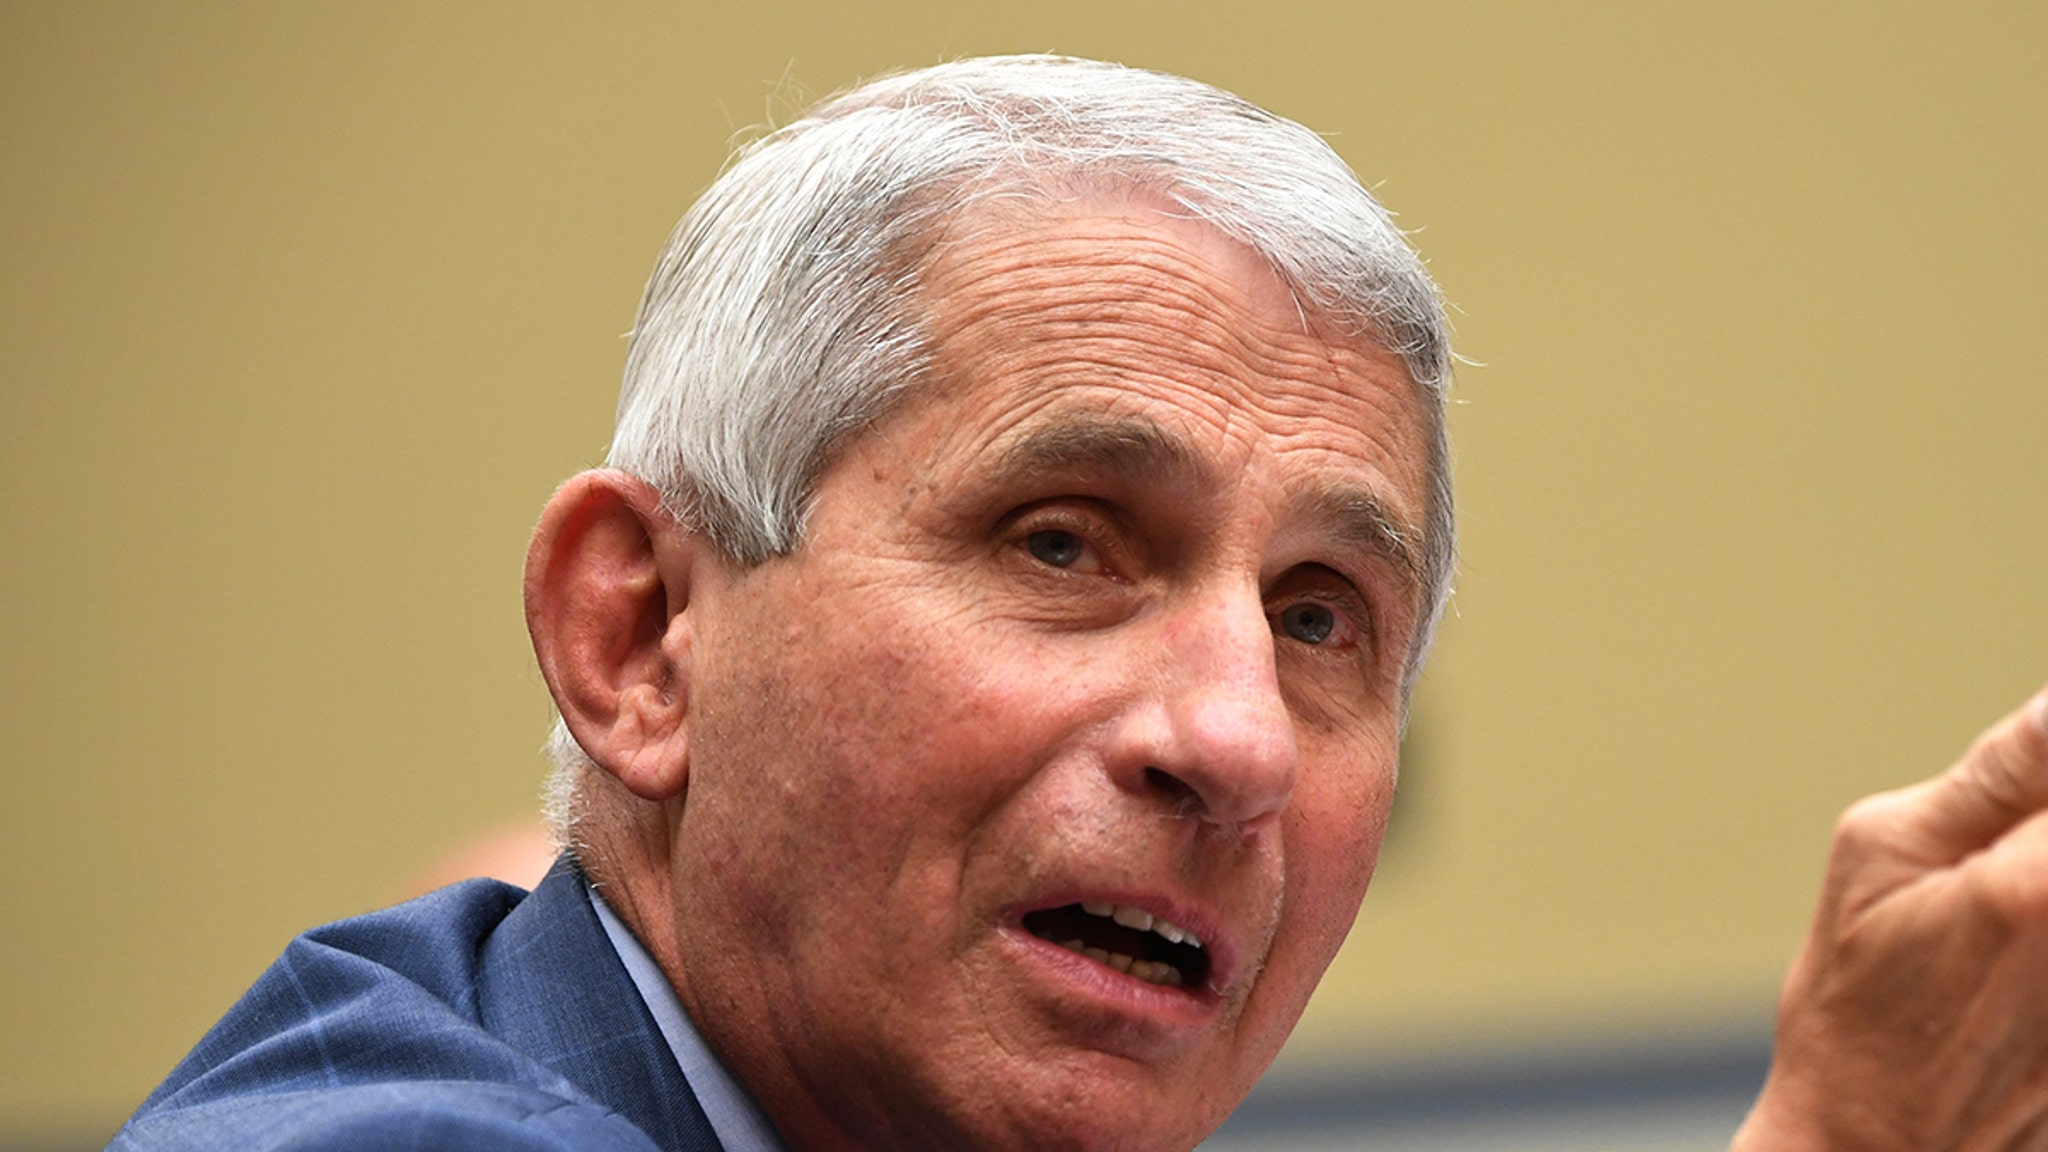 Dr. Fauci Opens Up on Death Threats ... Once Covered in Powder from Suspicious Letter